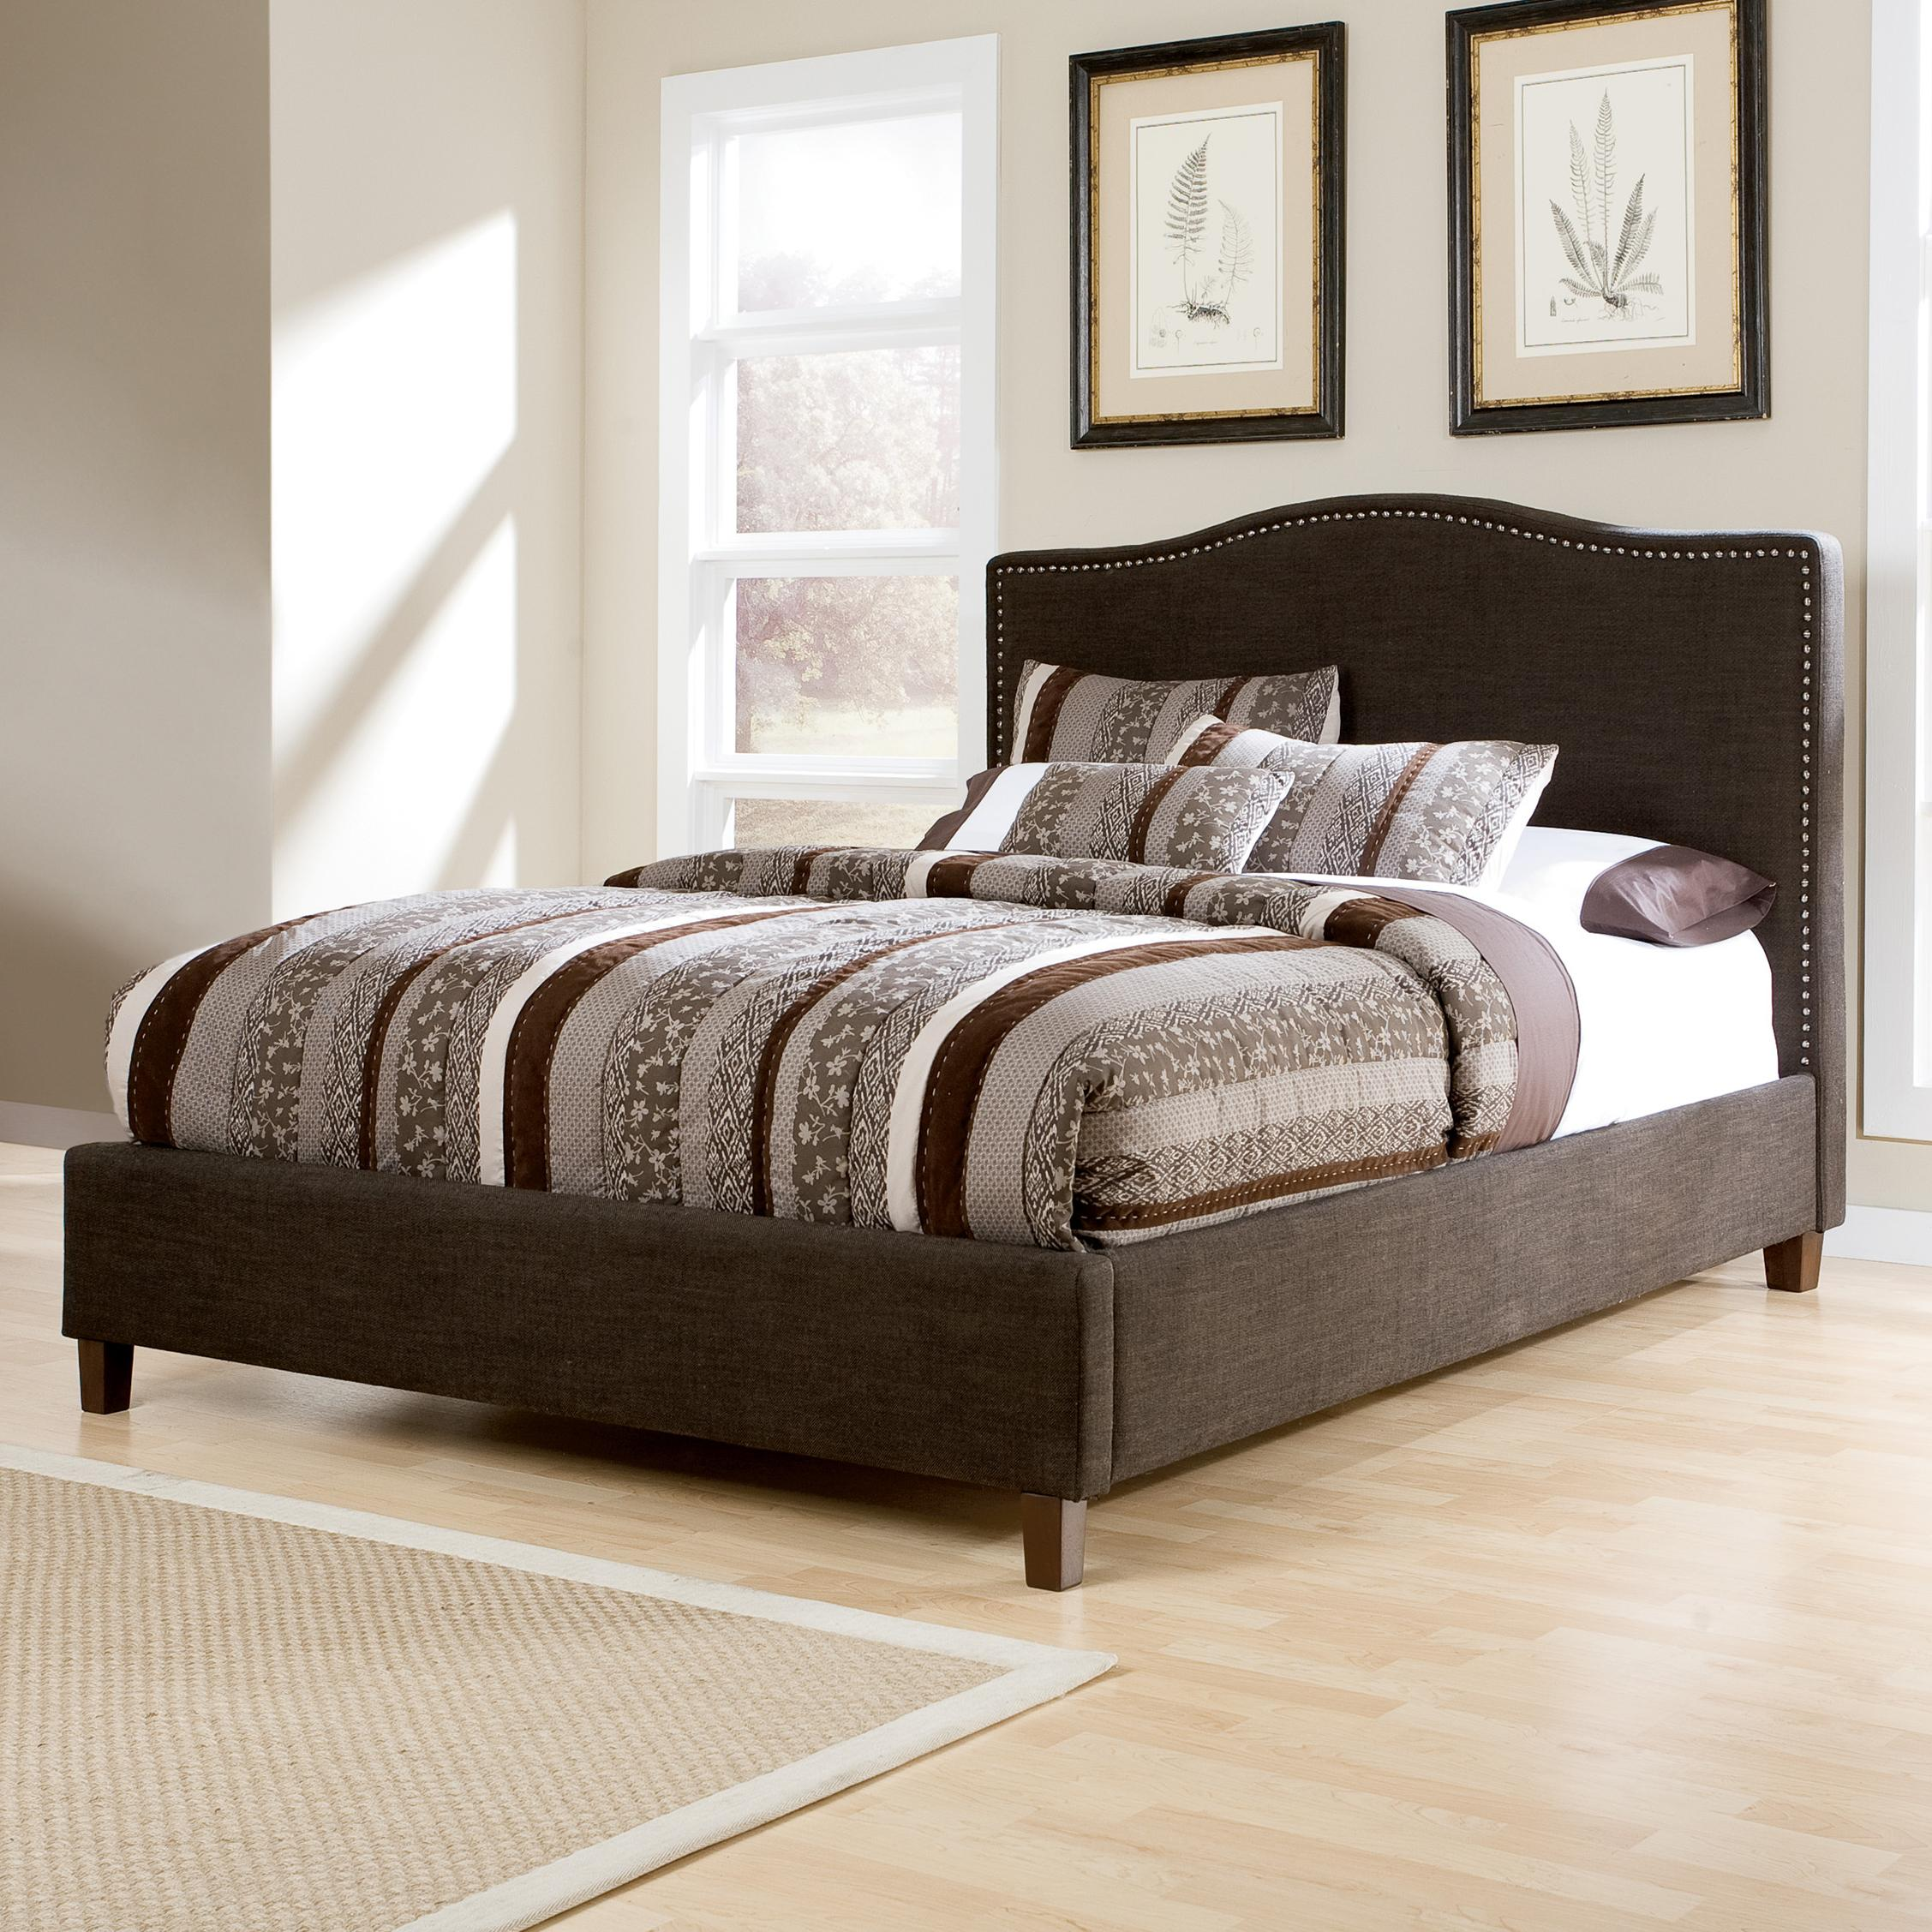 Signature Design by Ashley Kasidon King Upholstered Bed - Item Number: B600-358+356